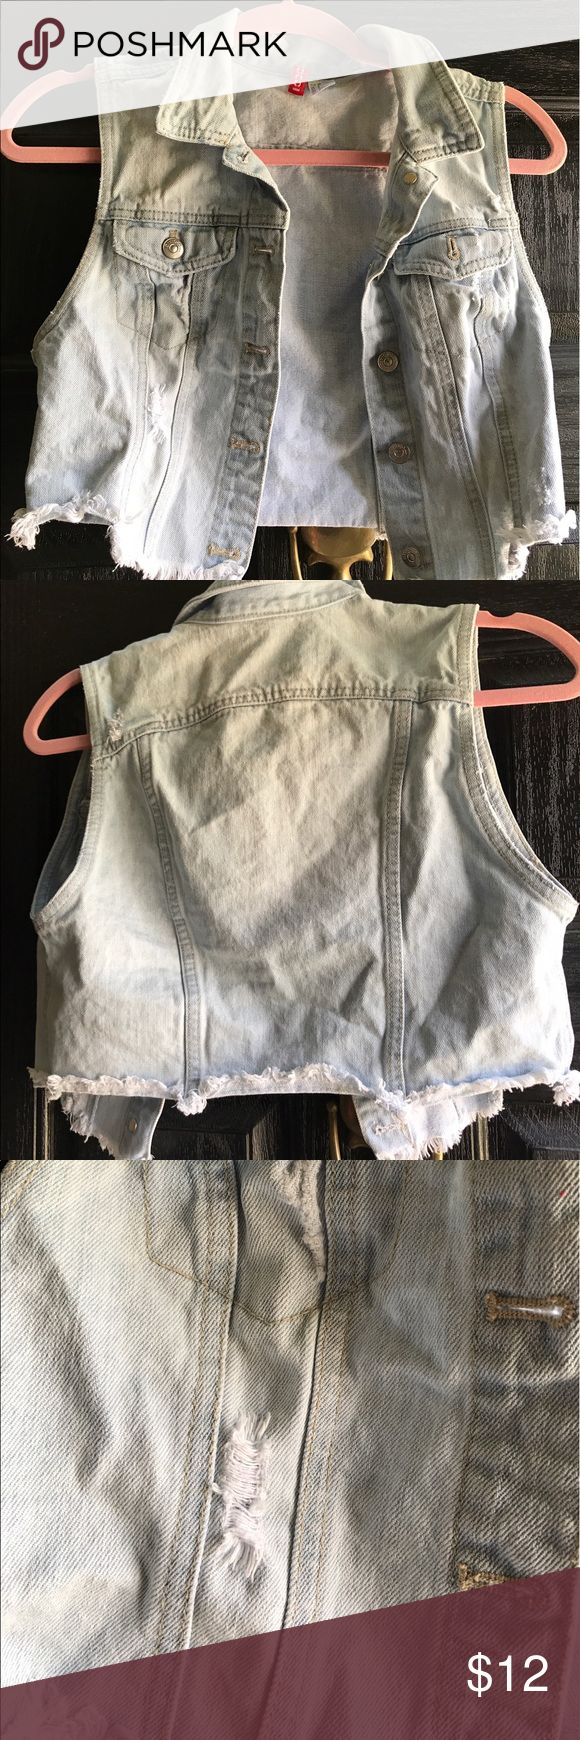 Distressed Denim Vest Denim vest by H&M with frayed hem for distressed look. Worn rarely so in excellent condition. Like new. H&M Jackets & Coats Vests